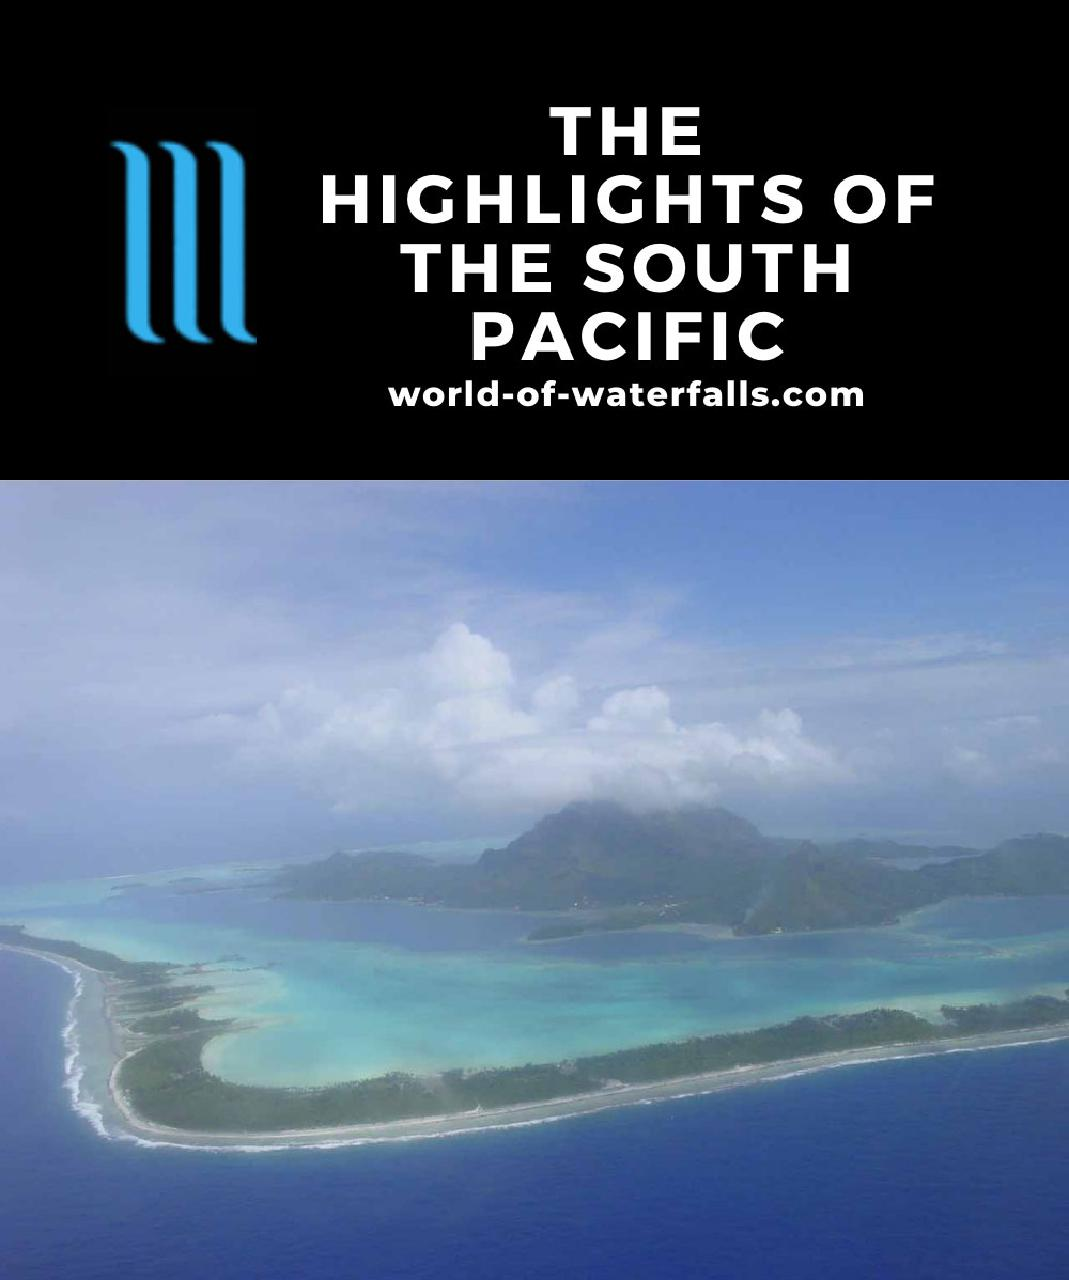 South Pacific Highlights